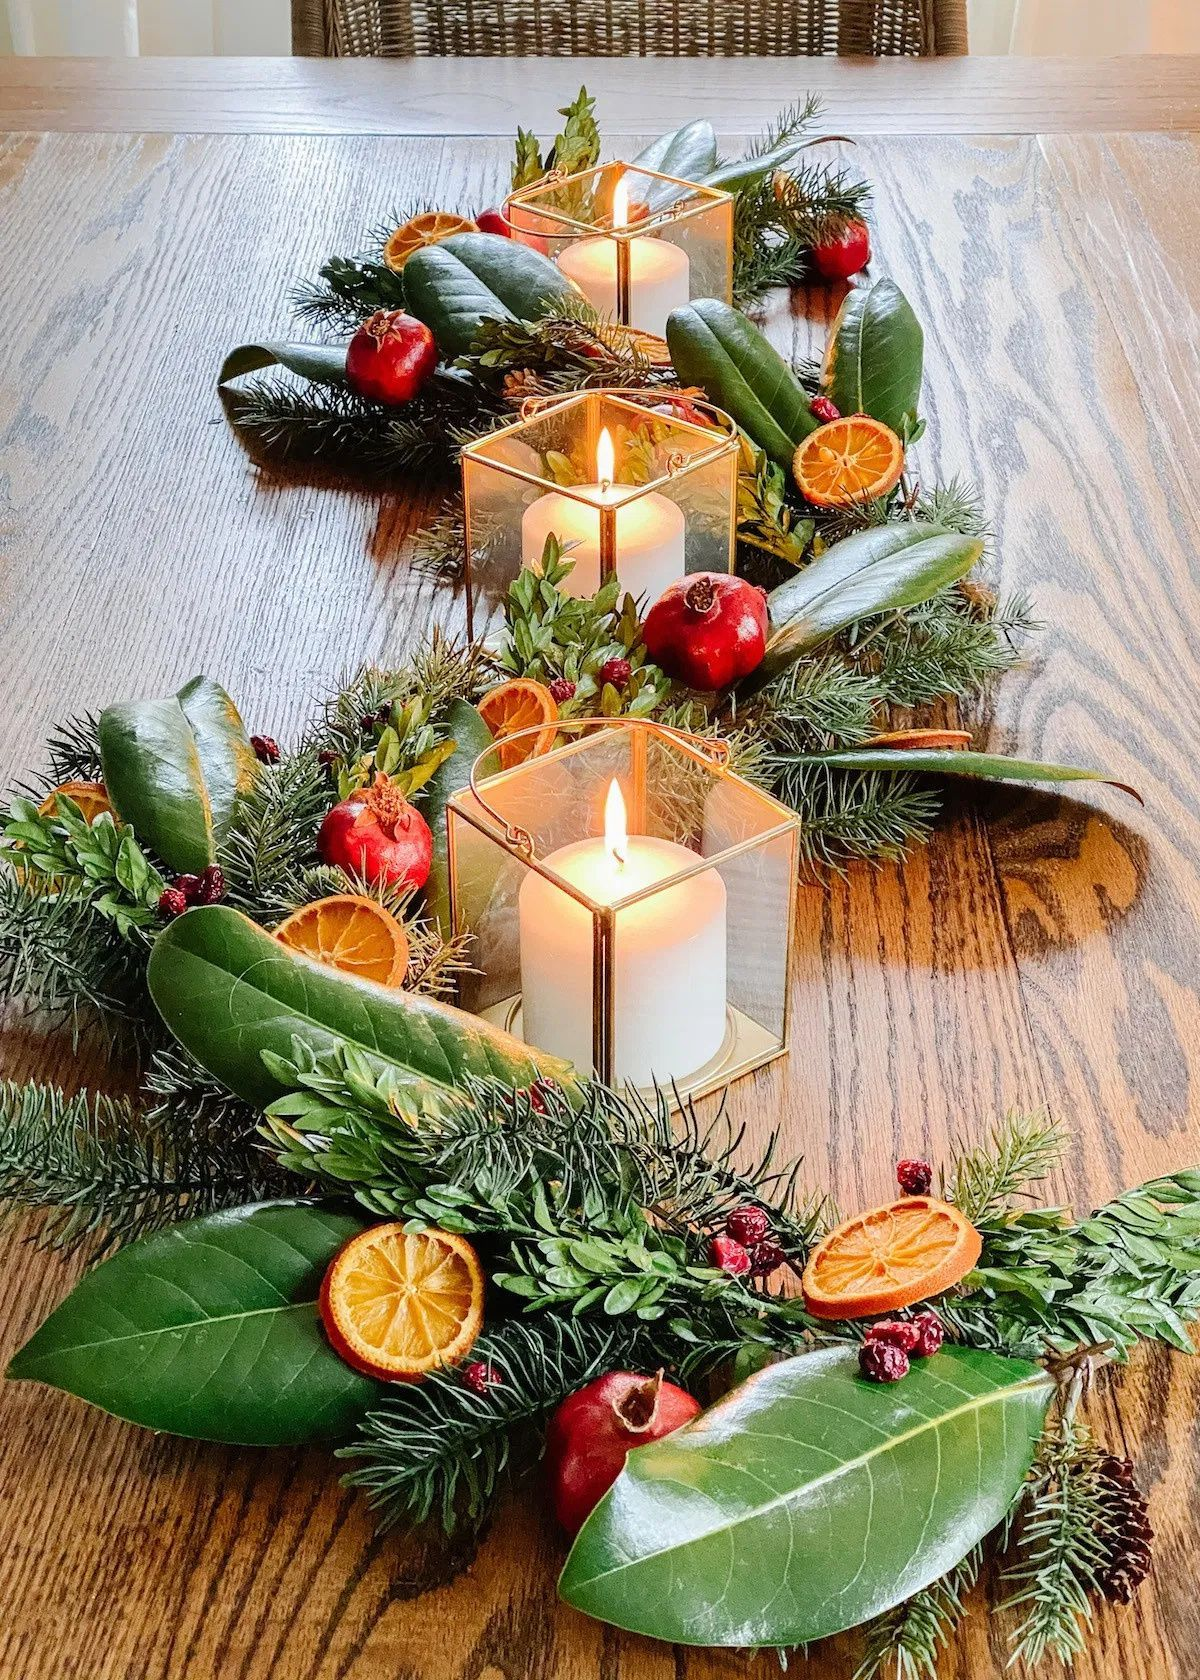 How To Dry Fruit And Preserve Leaves For Christmas Decor Bless Er House In 2020 Christmas Decorations Christmas Decorations Xmas Christmas Crafts